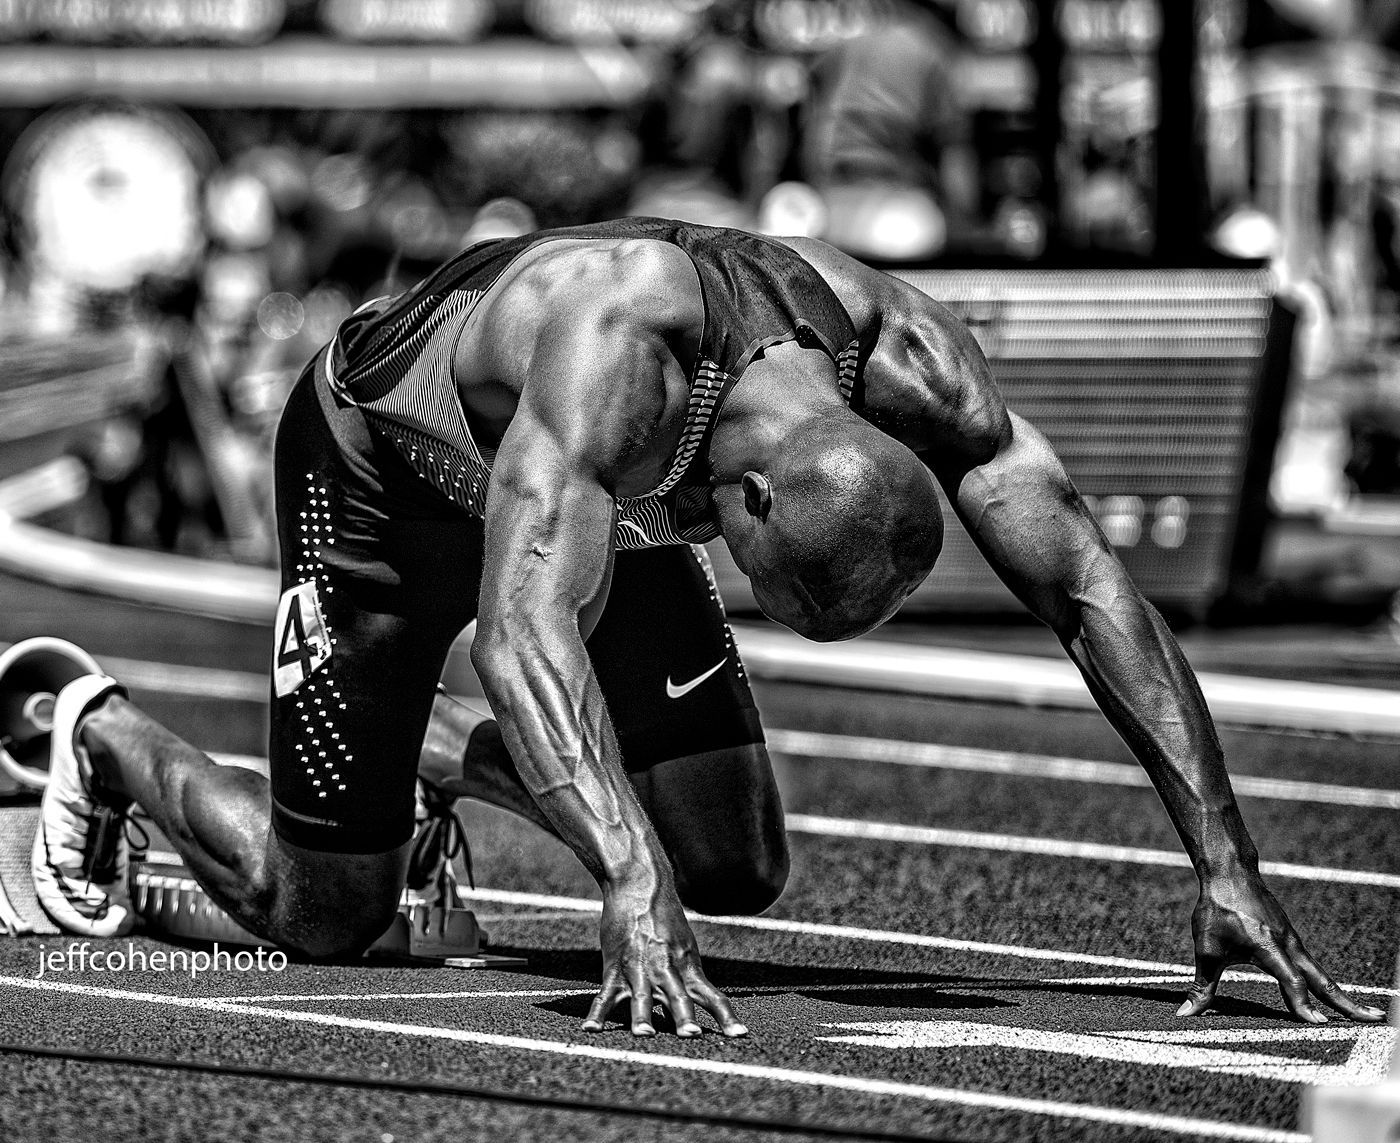 1r2016_oly_trials_day_2_lashawn_merritt_400m_bw_jeff_cohen_photo_7188_bw.jpg